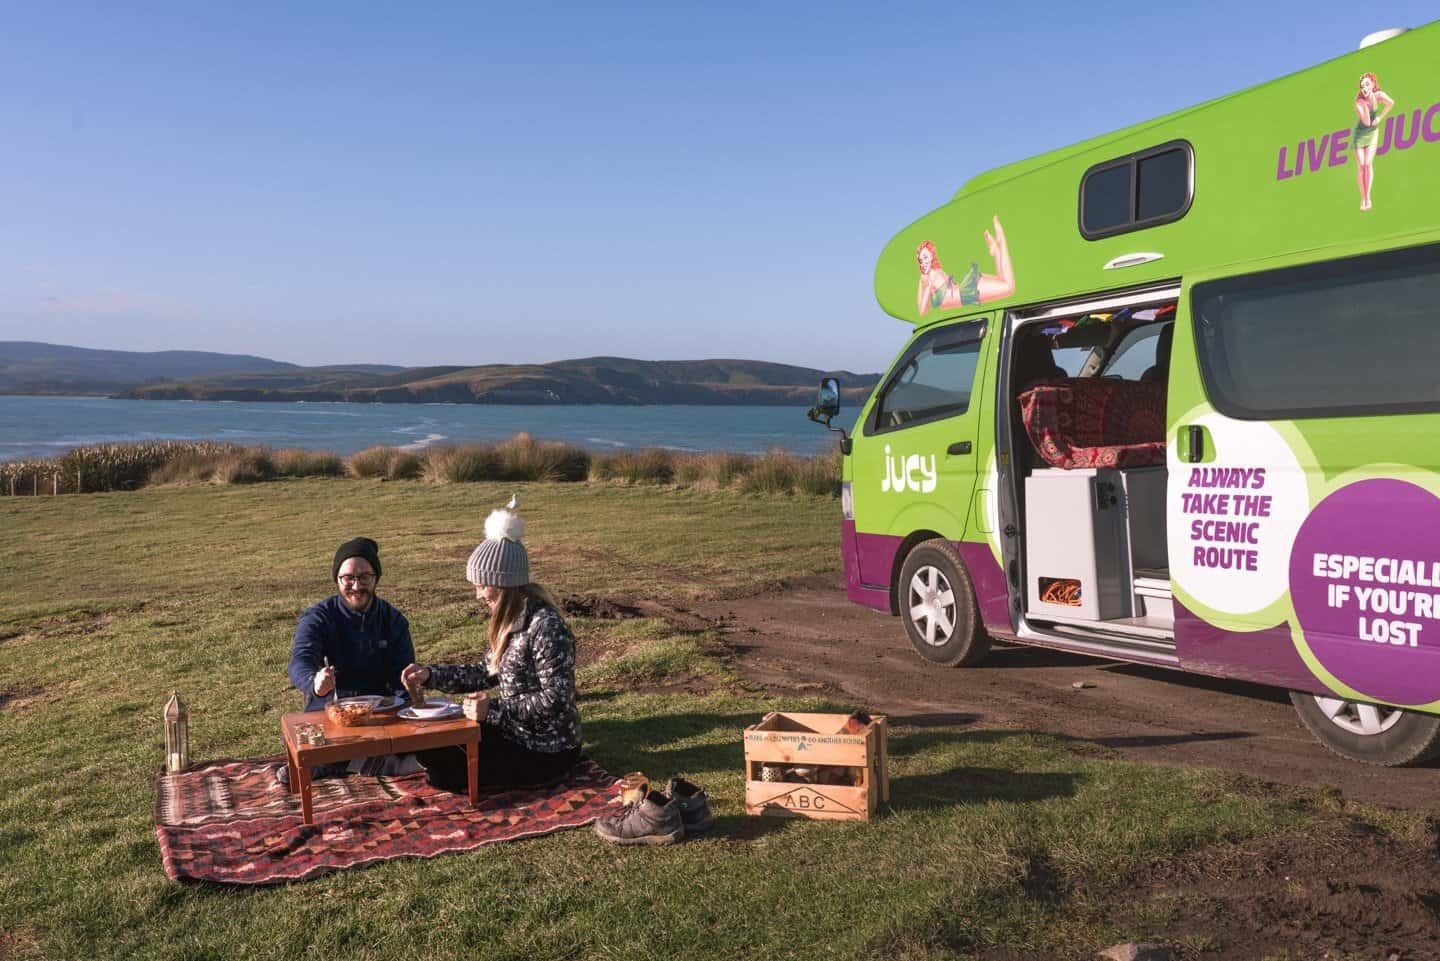 Campervanning New Zealand is the cheapest and most liberating way to explore the country, but it is still expensive!